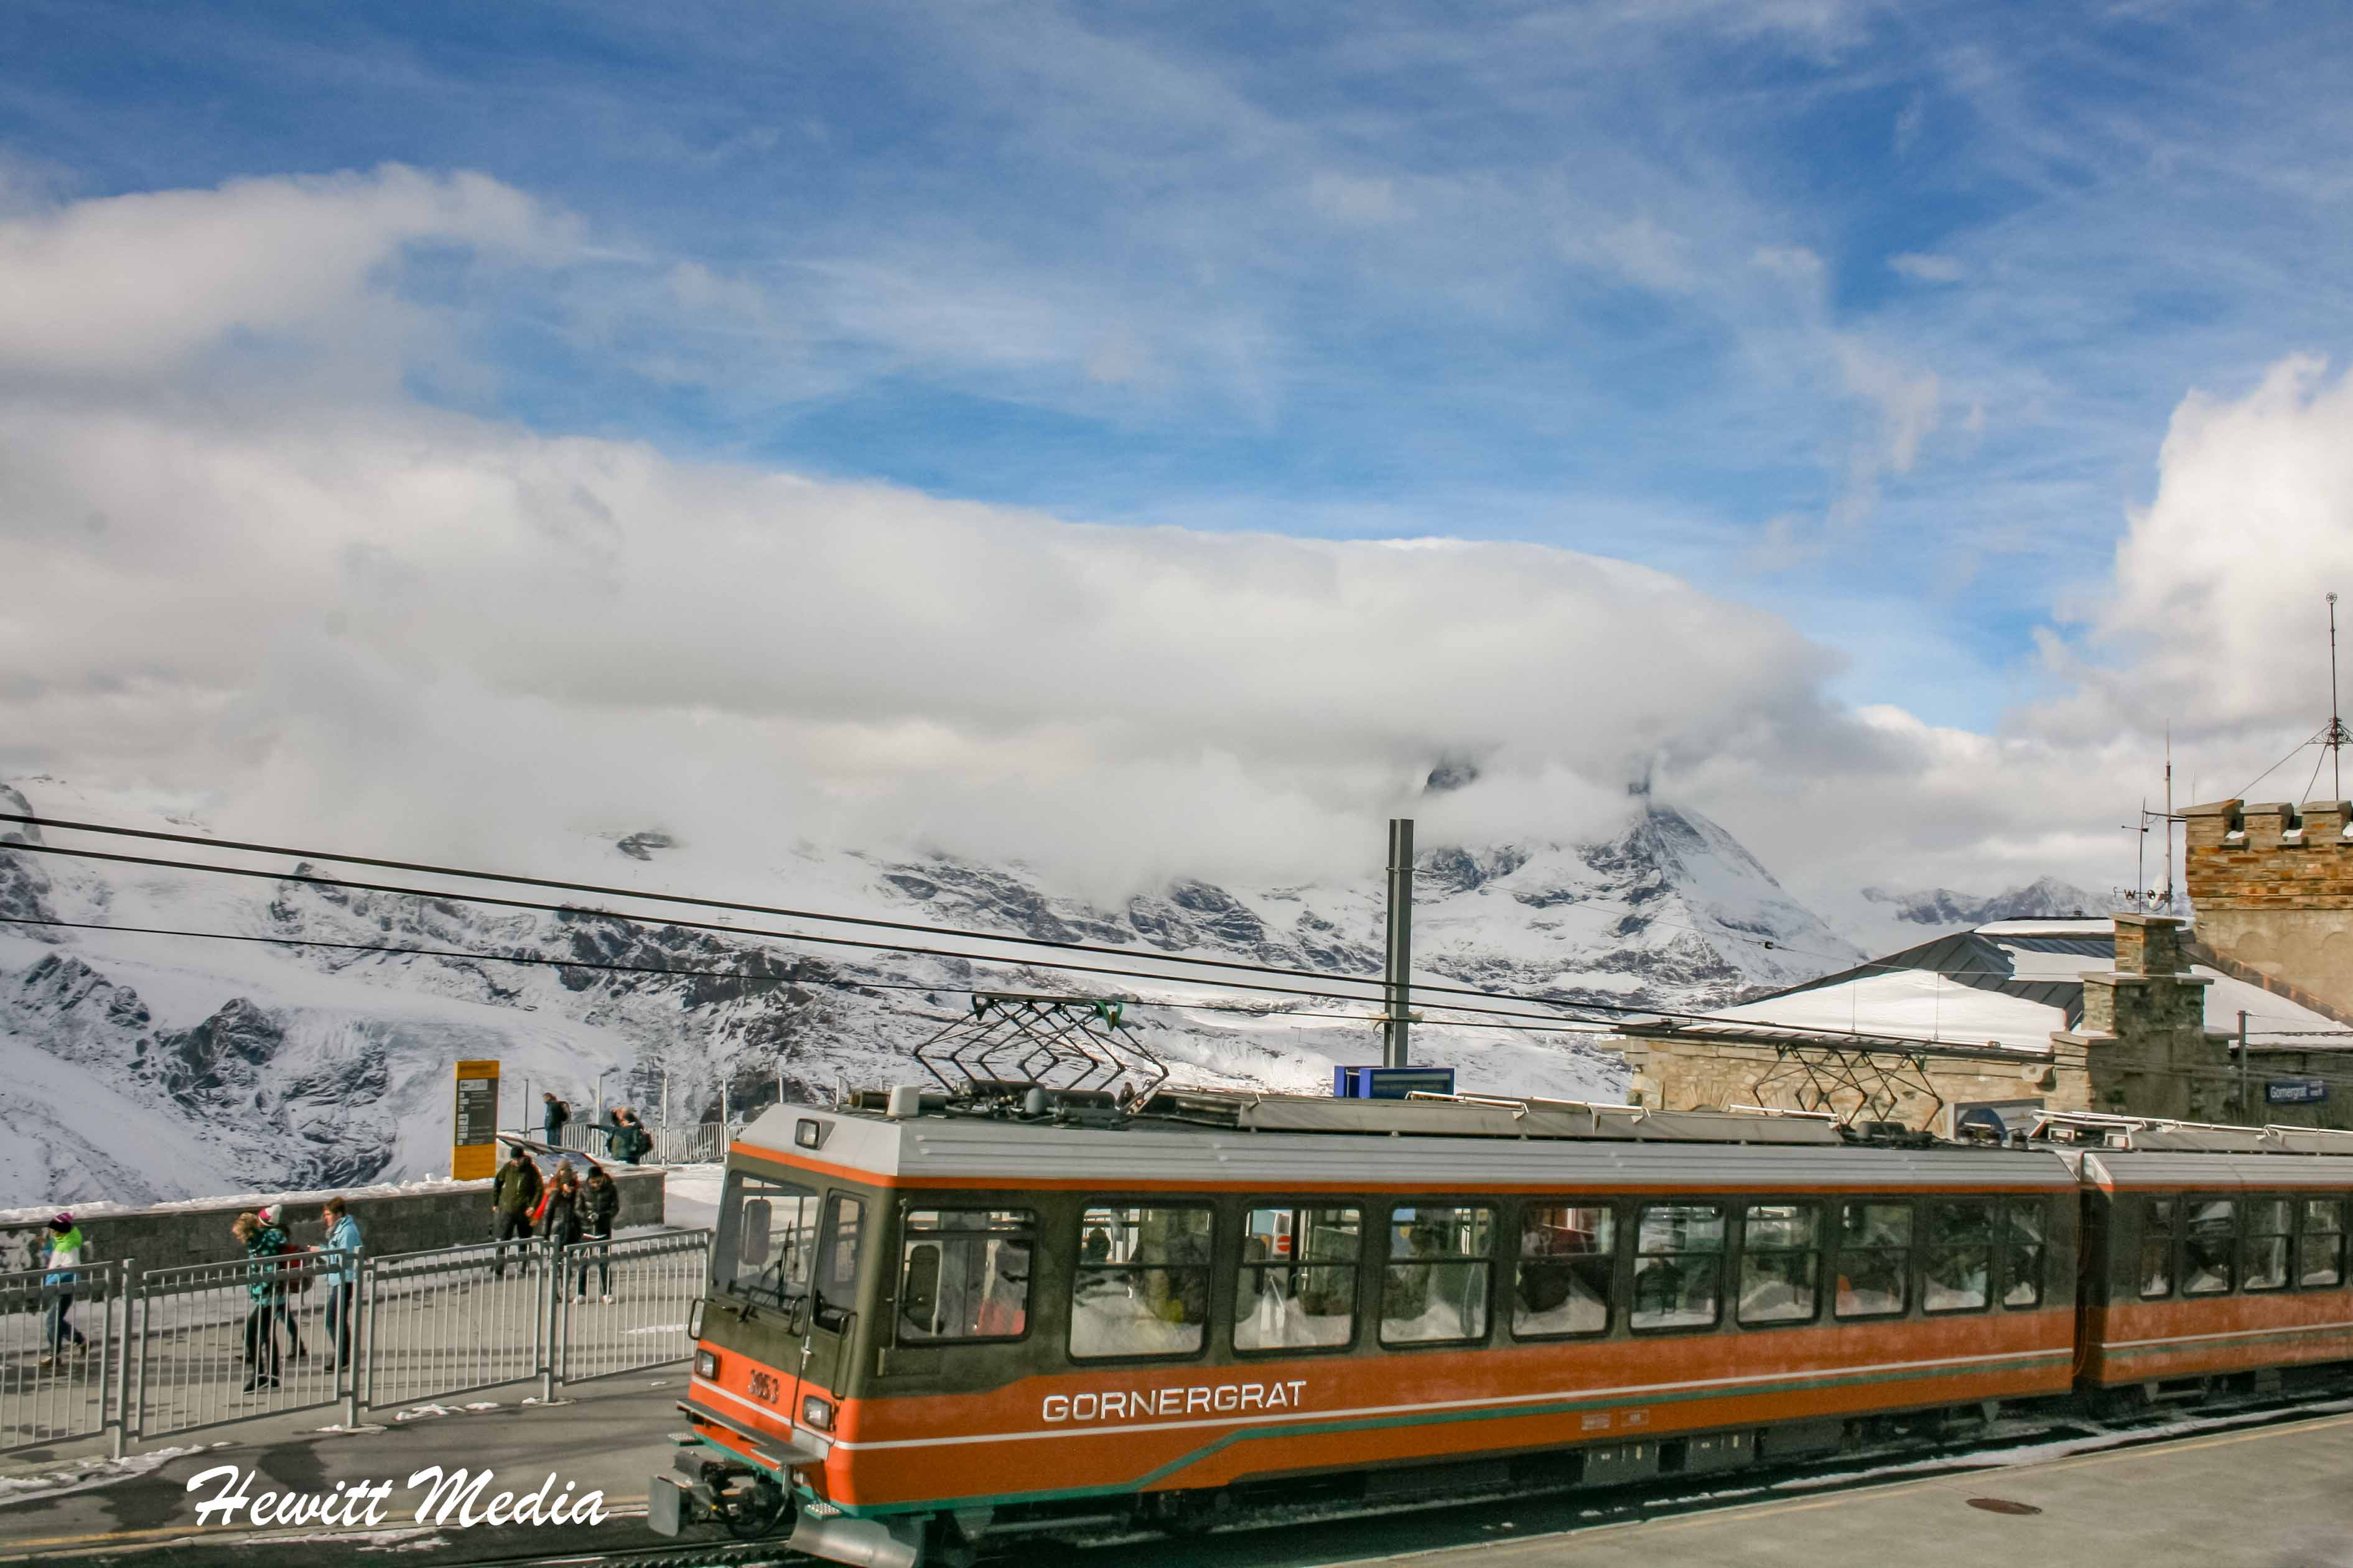 Train to Gornergrat